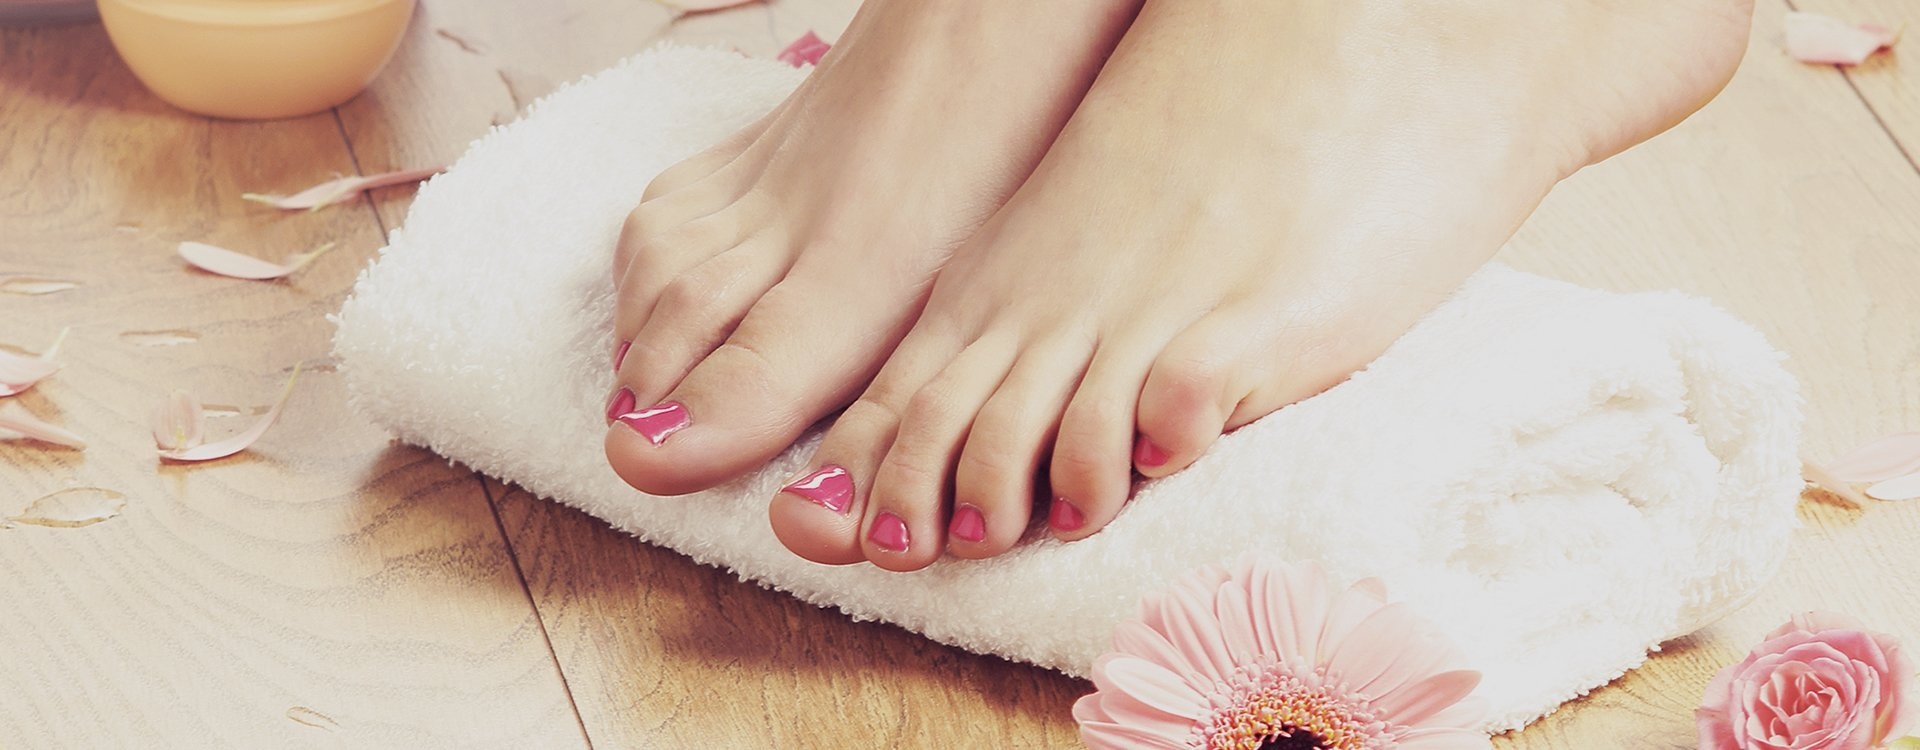 Solutions To Common Foot Problems